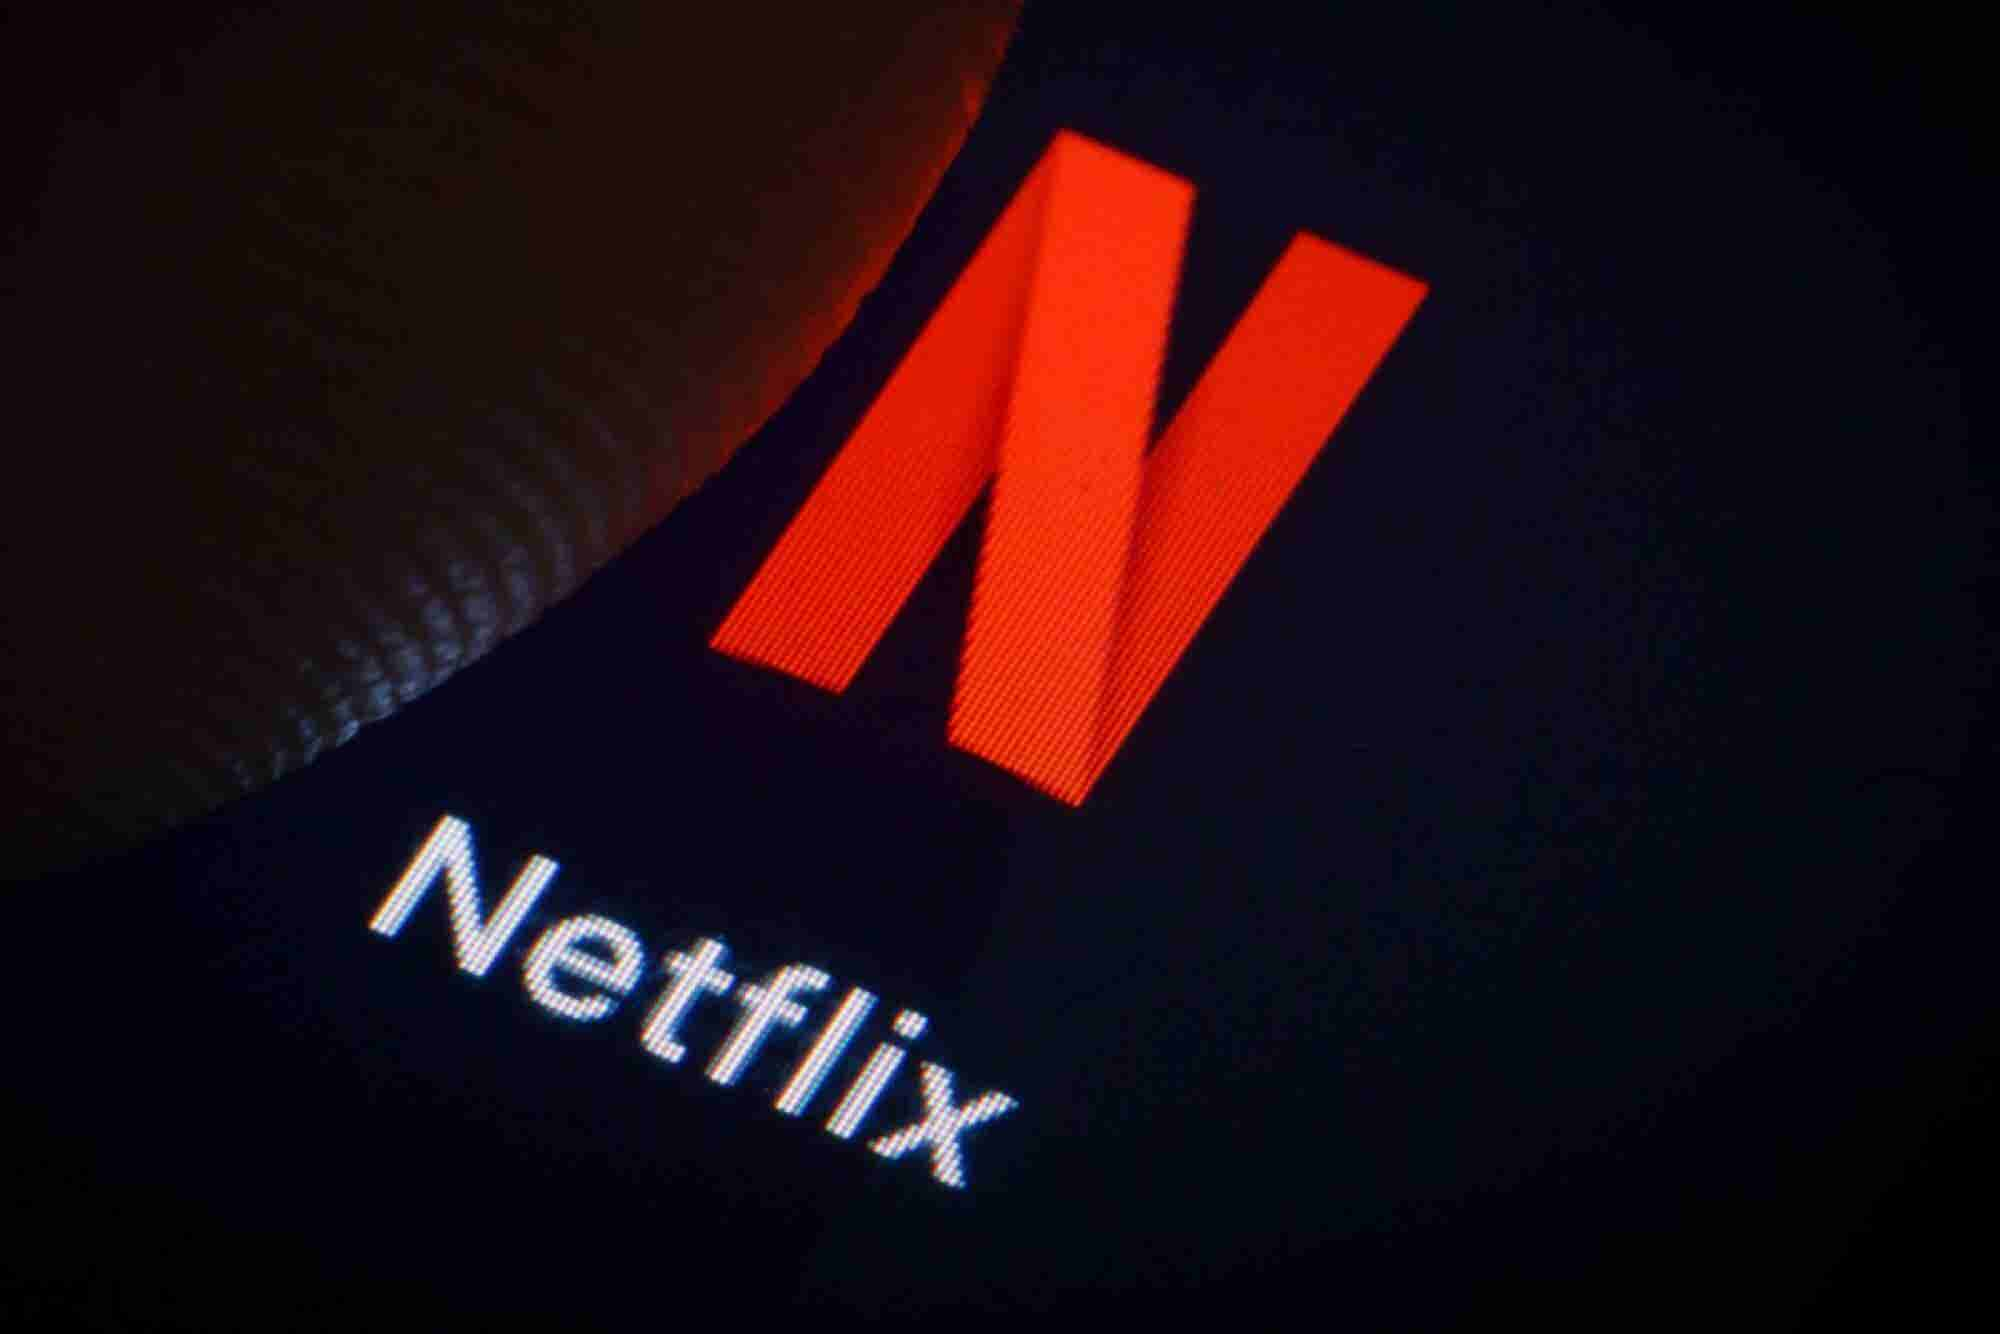 To Save Some Cash, Netflix Developed Its Own Font